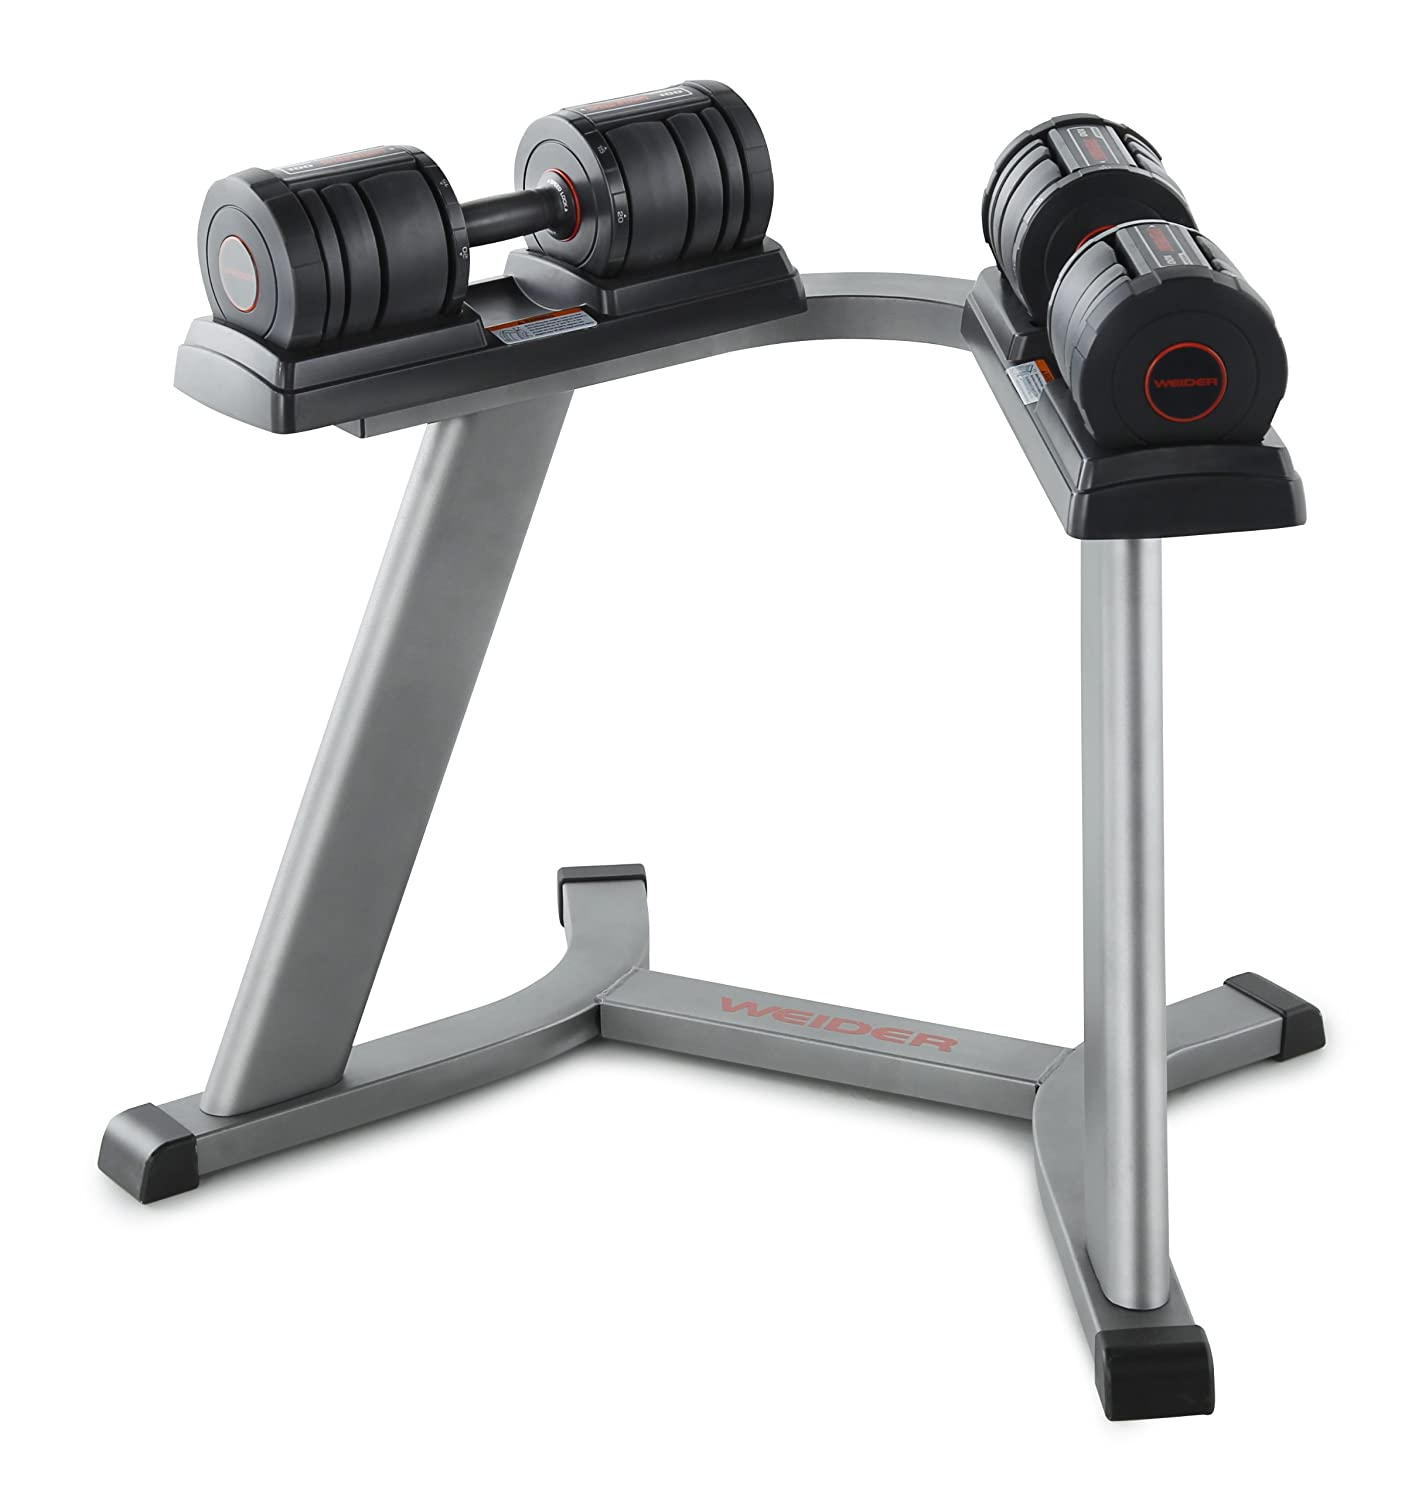 weider adjustable dumbbell set